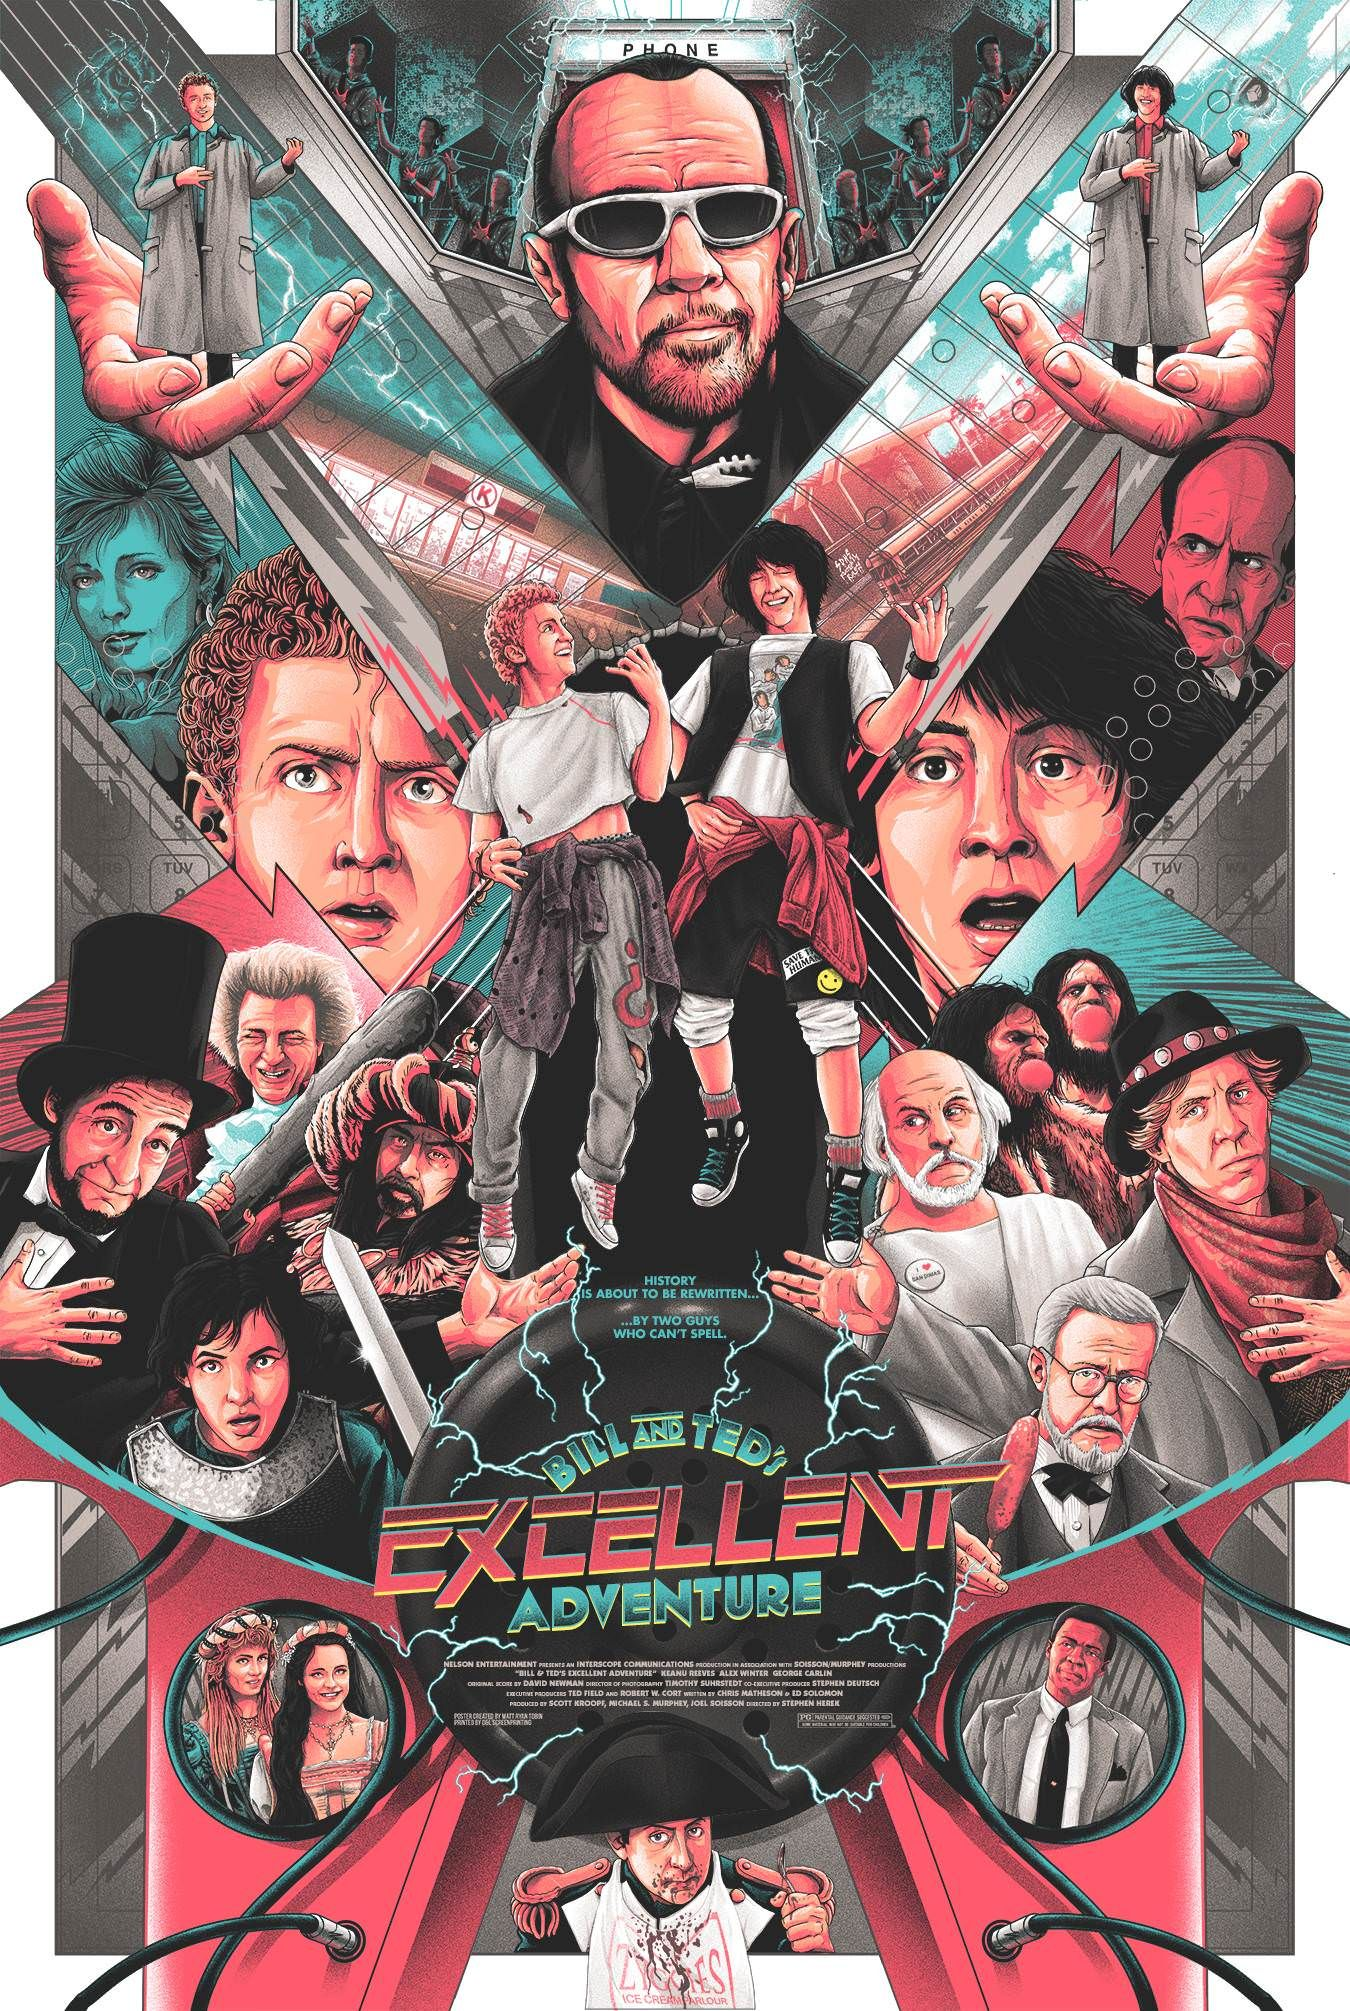 Bill And Ted S Excellent Adventure 1989 1350 X 2011 Adventure Movie Movie Posters Poster Art